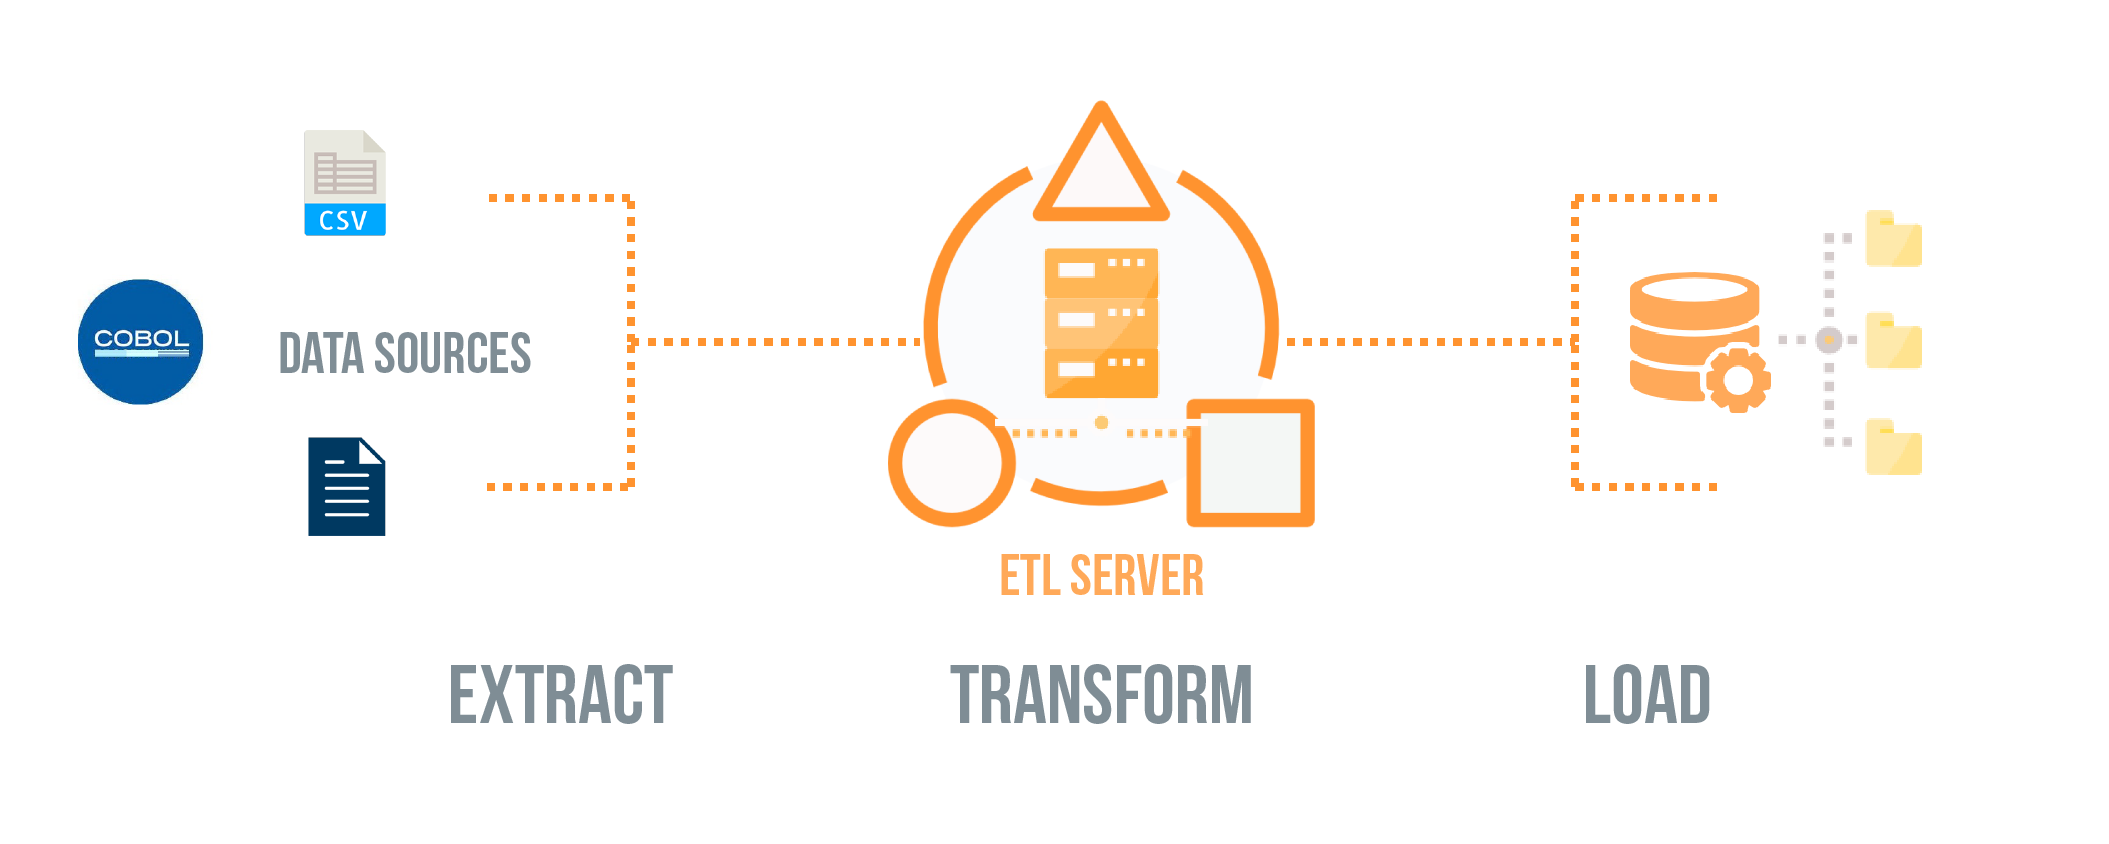 What is ETL? (Extract, Transform, Load)